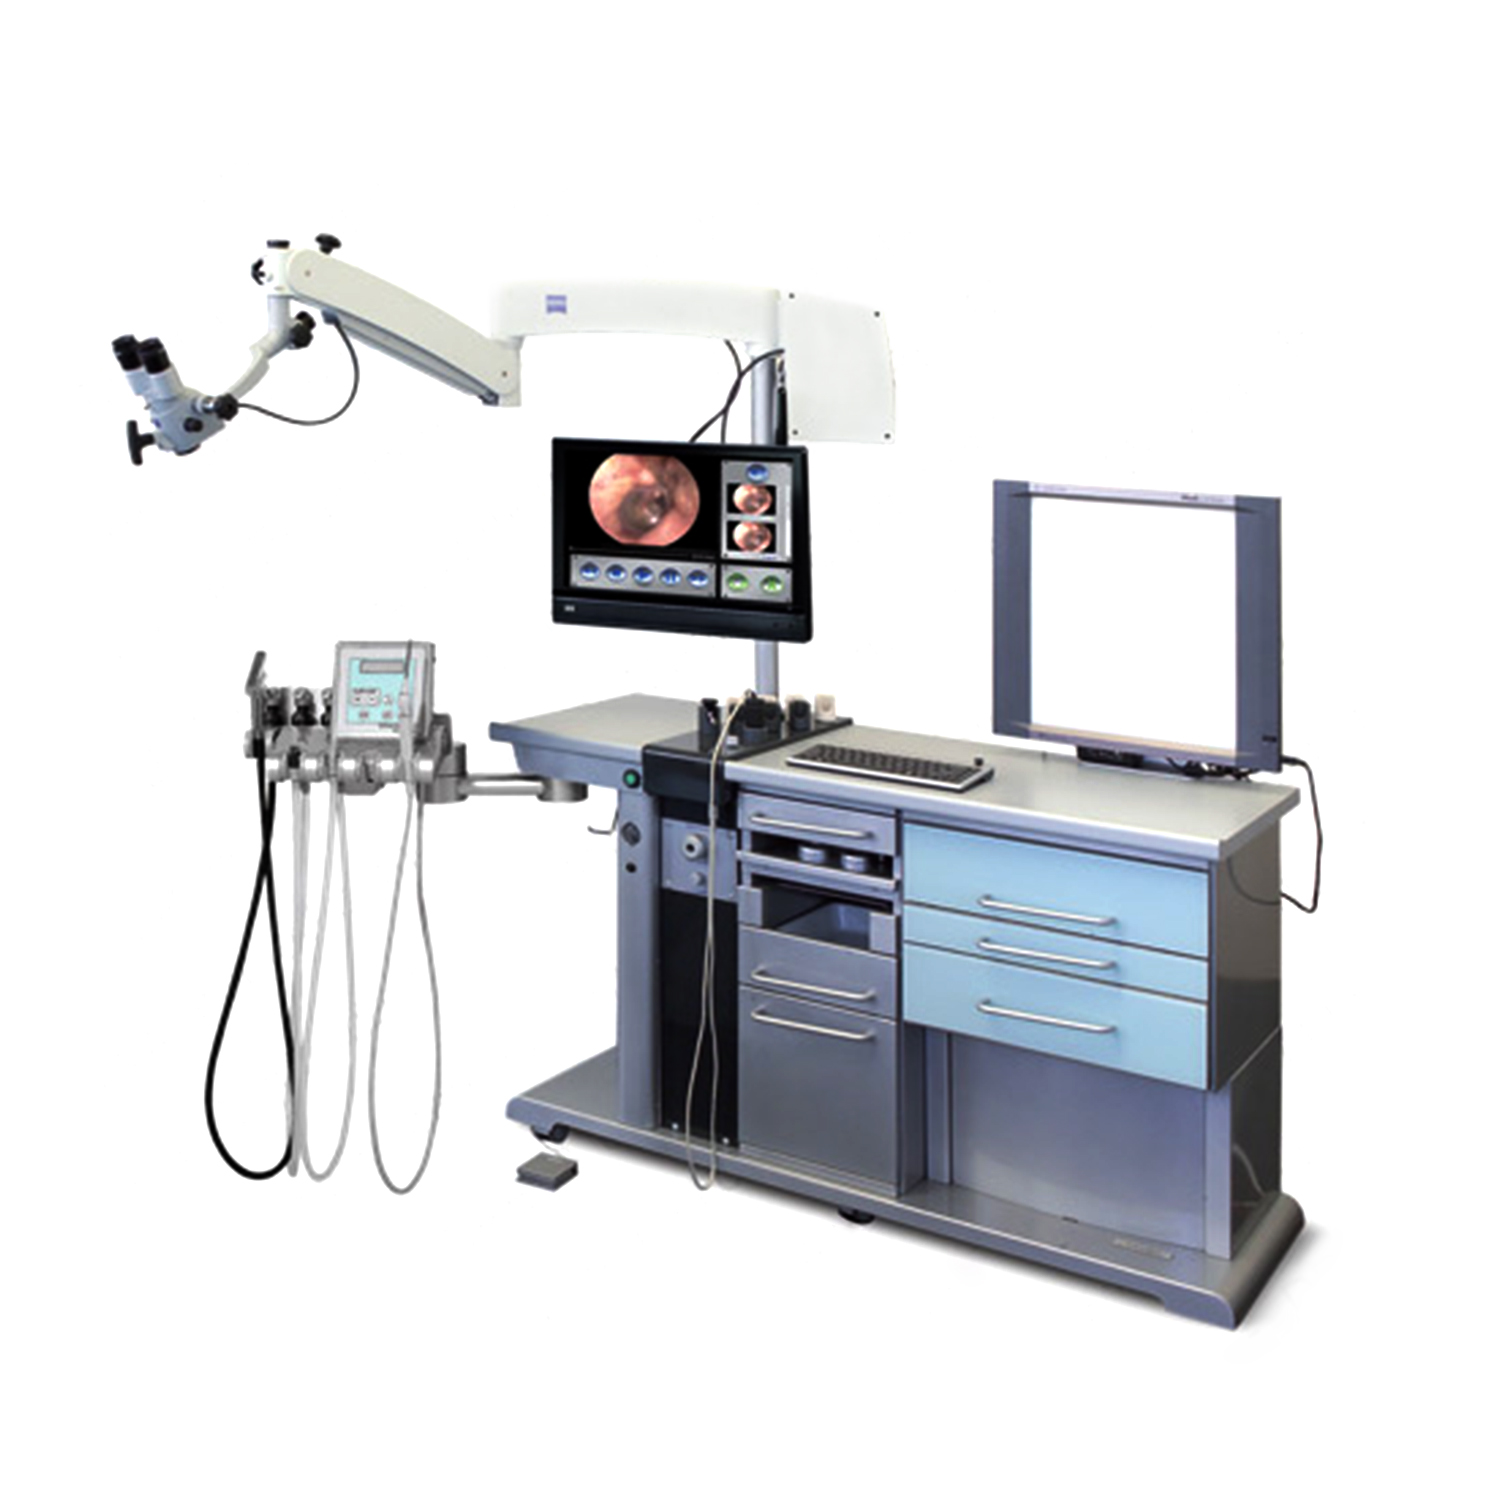 Euroclinic Otocompact Professional Luxe ENT Workstation